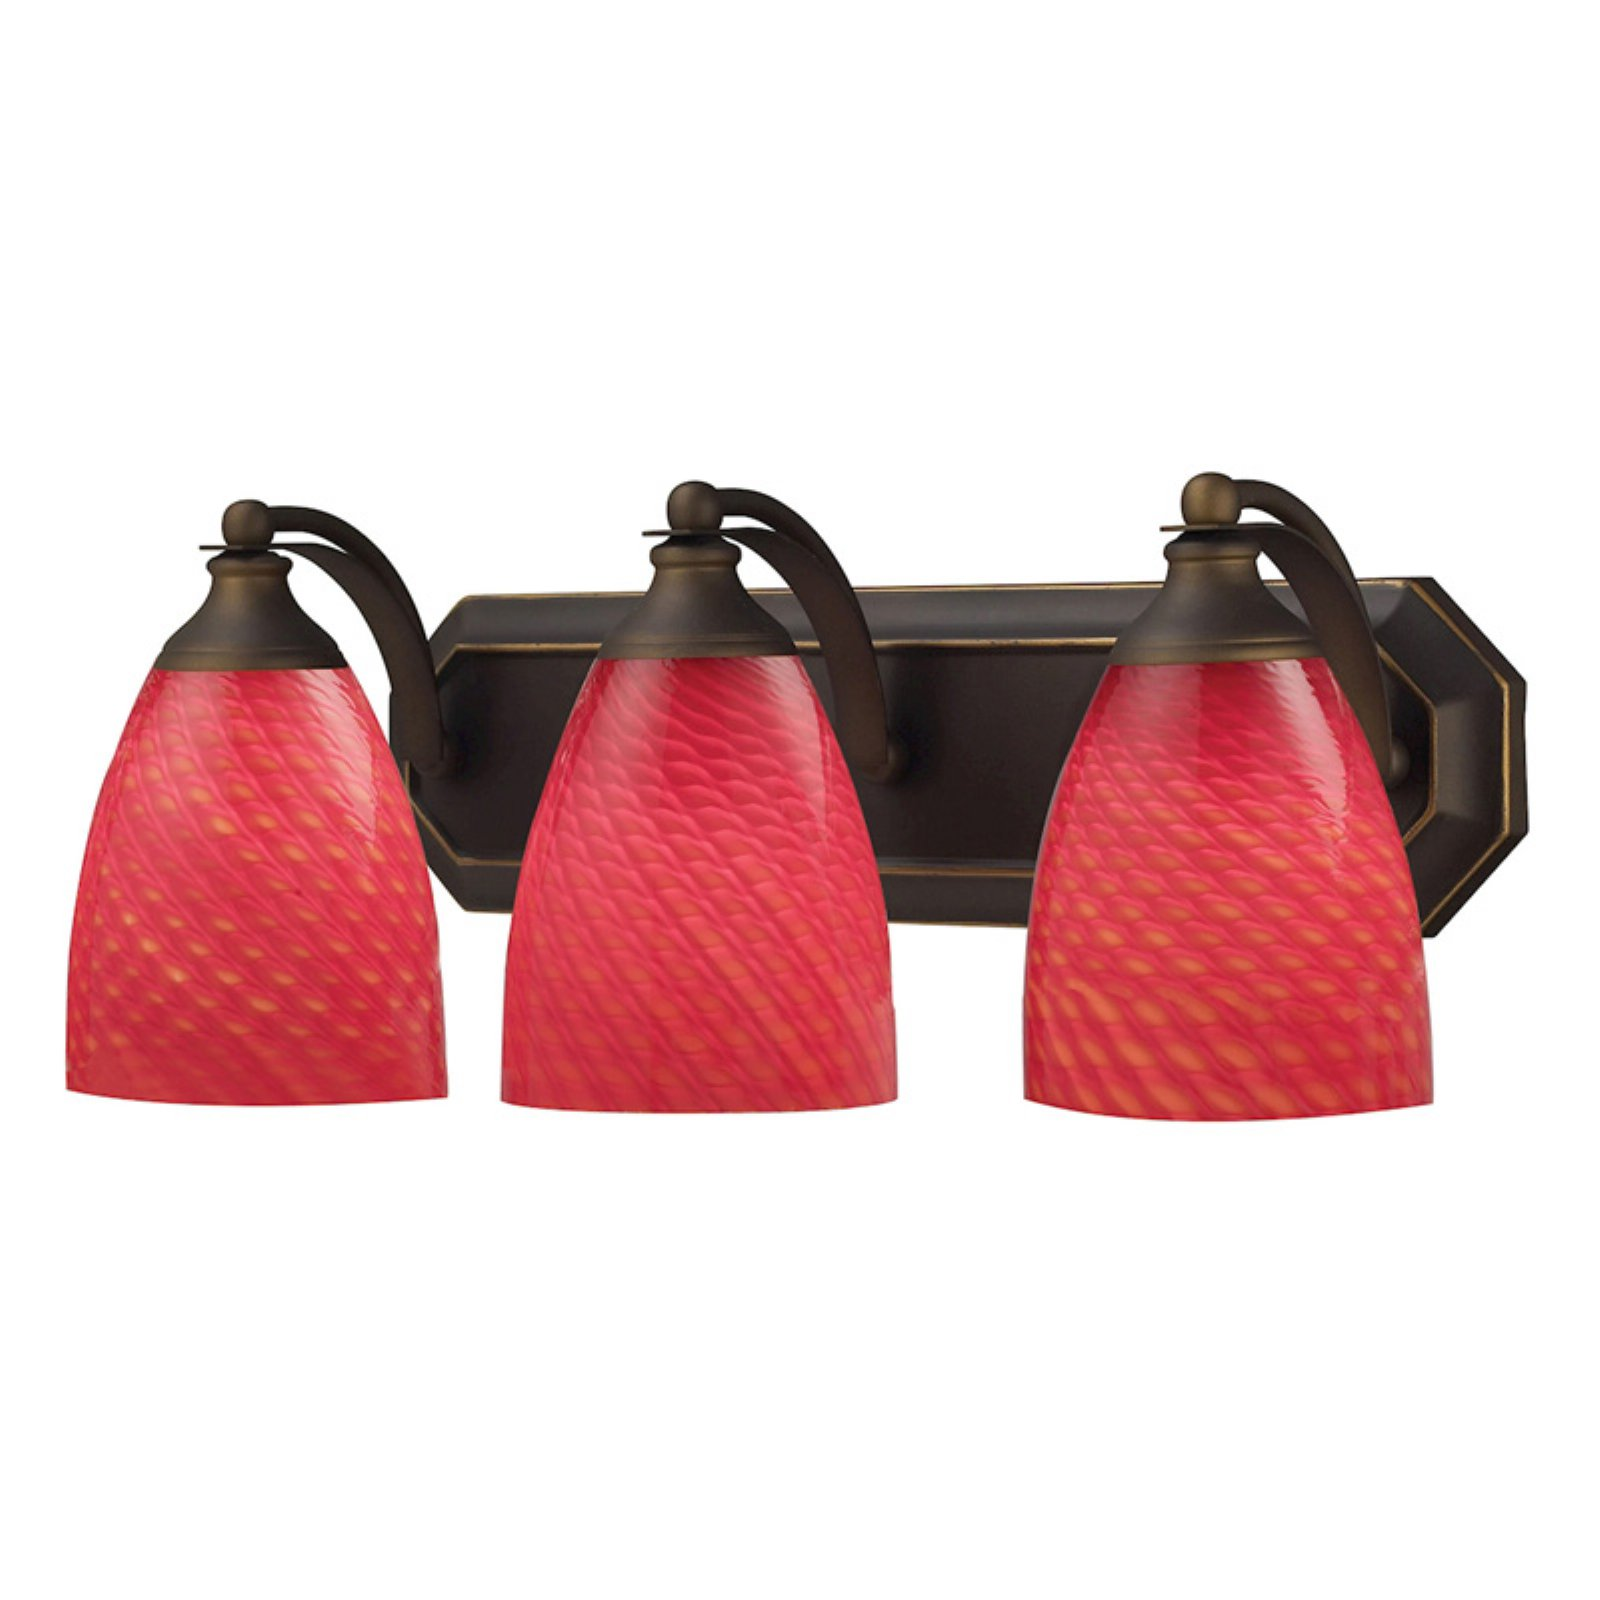 Elk Lighting Bath and Spa 570-3 Bathroom Vanity Light with Scarlet Red Glass